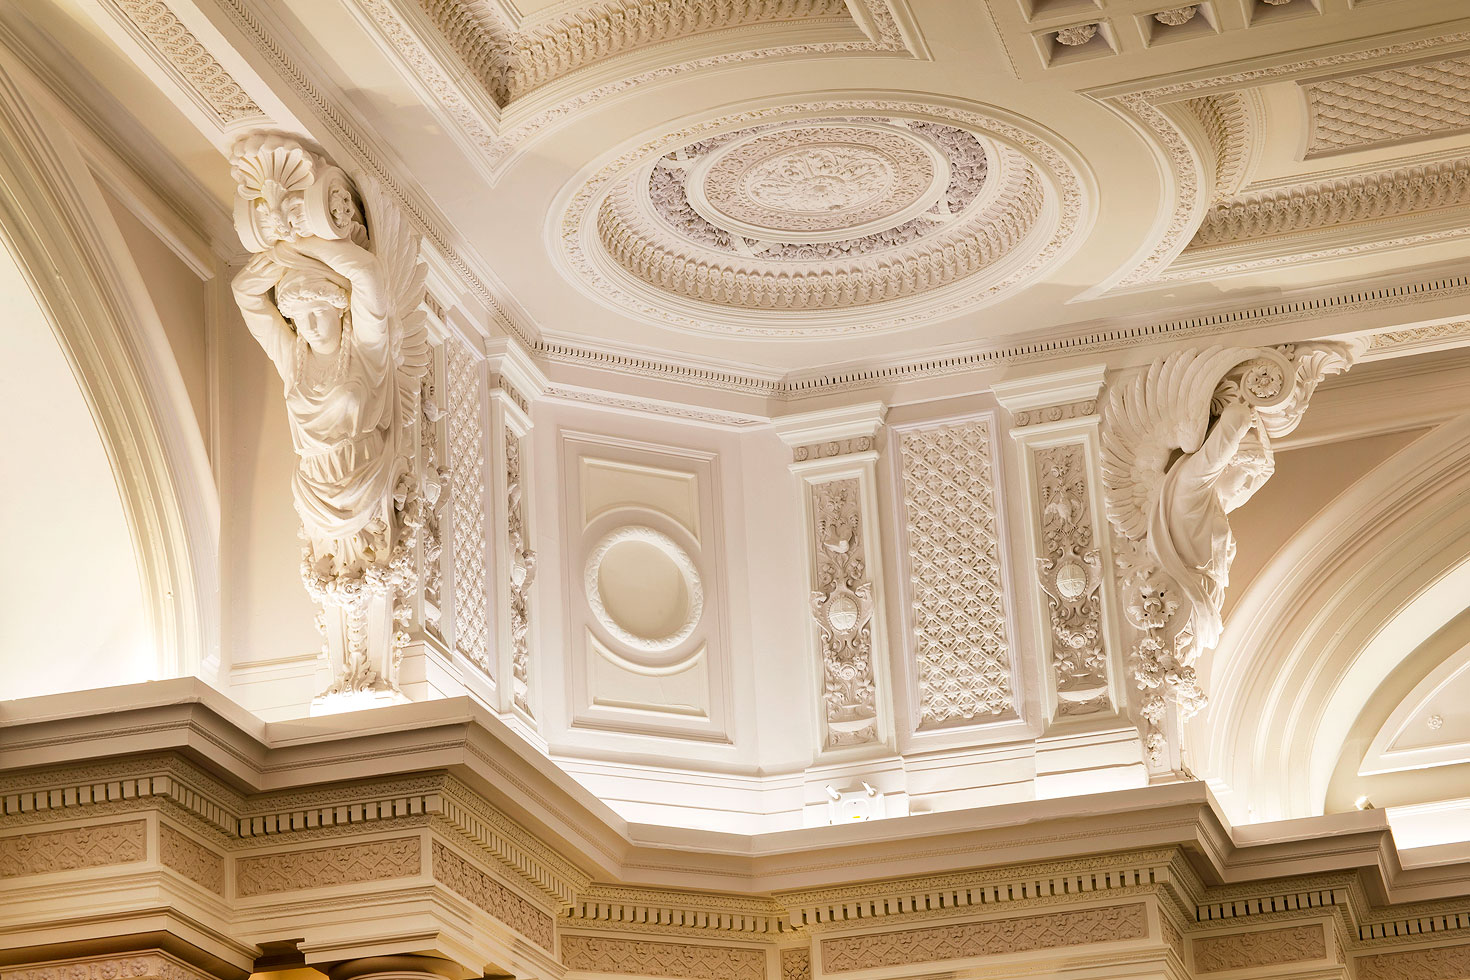 Charing Cross Ceiling